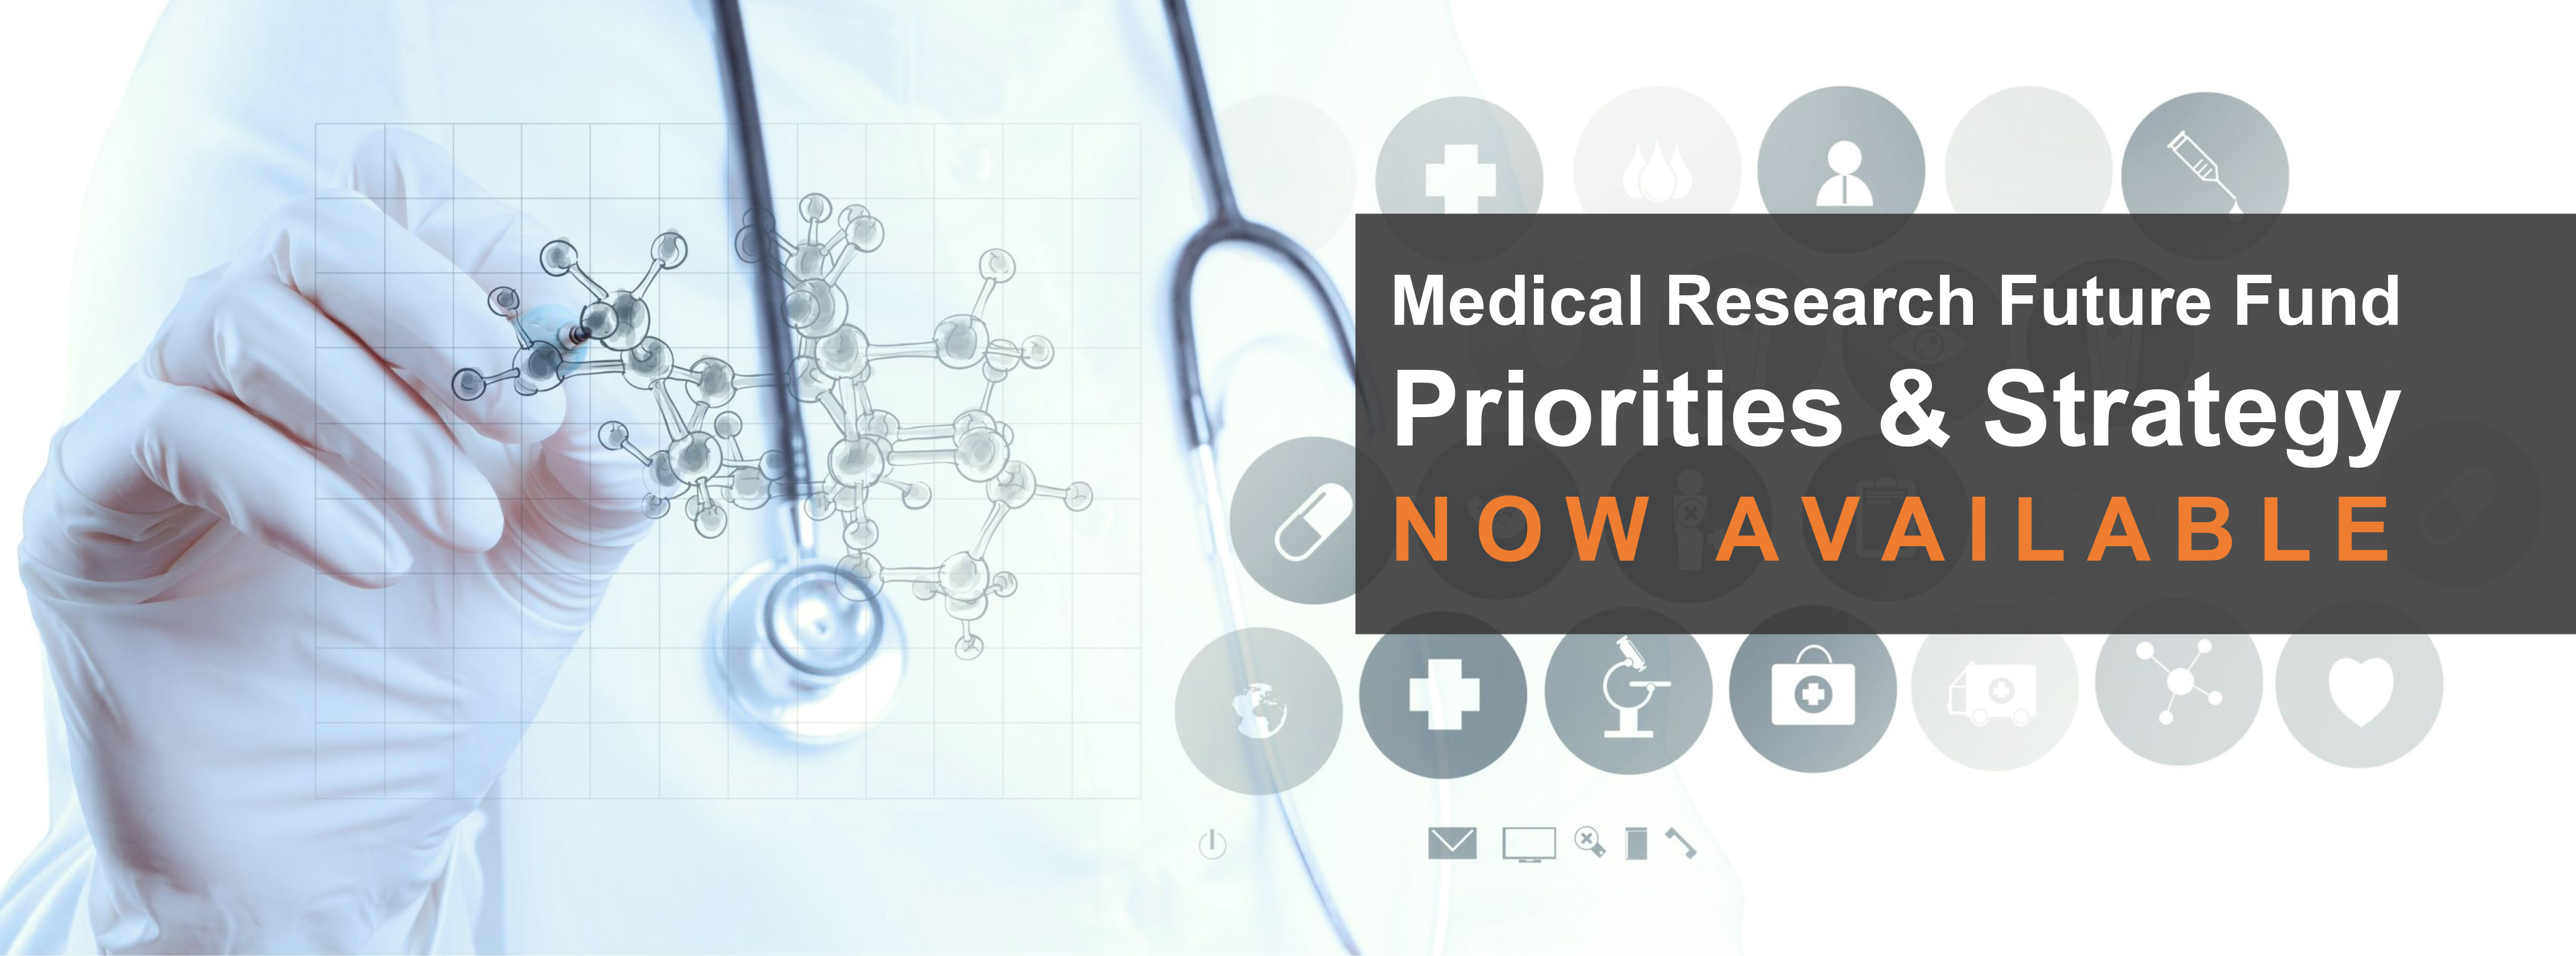 Federal Medical Research Plan: The Health & Economic Roadmap We Need